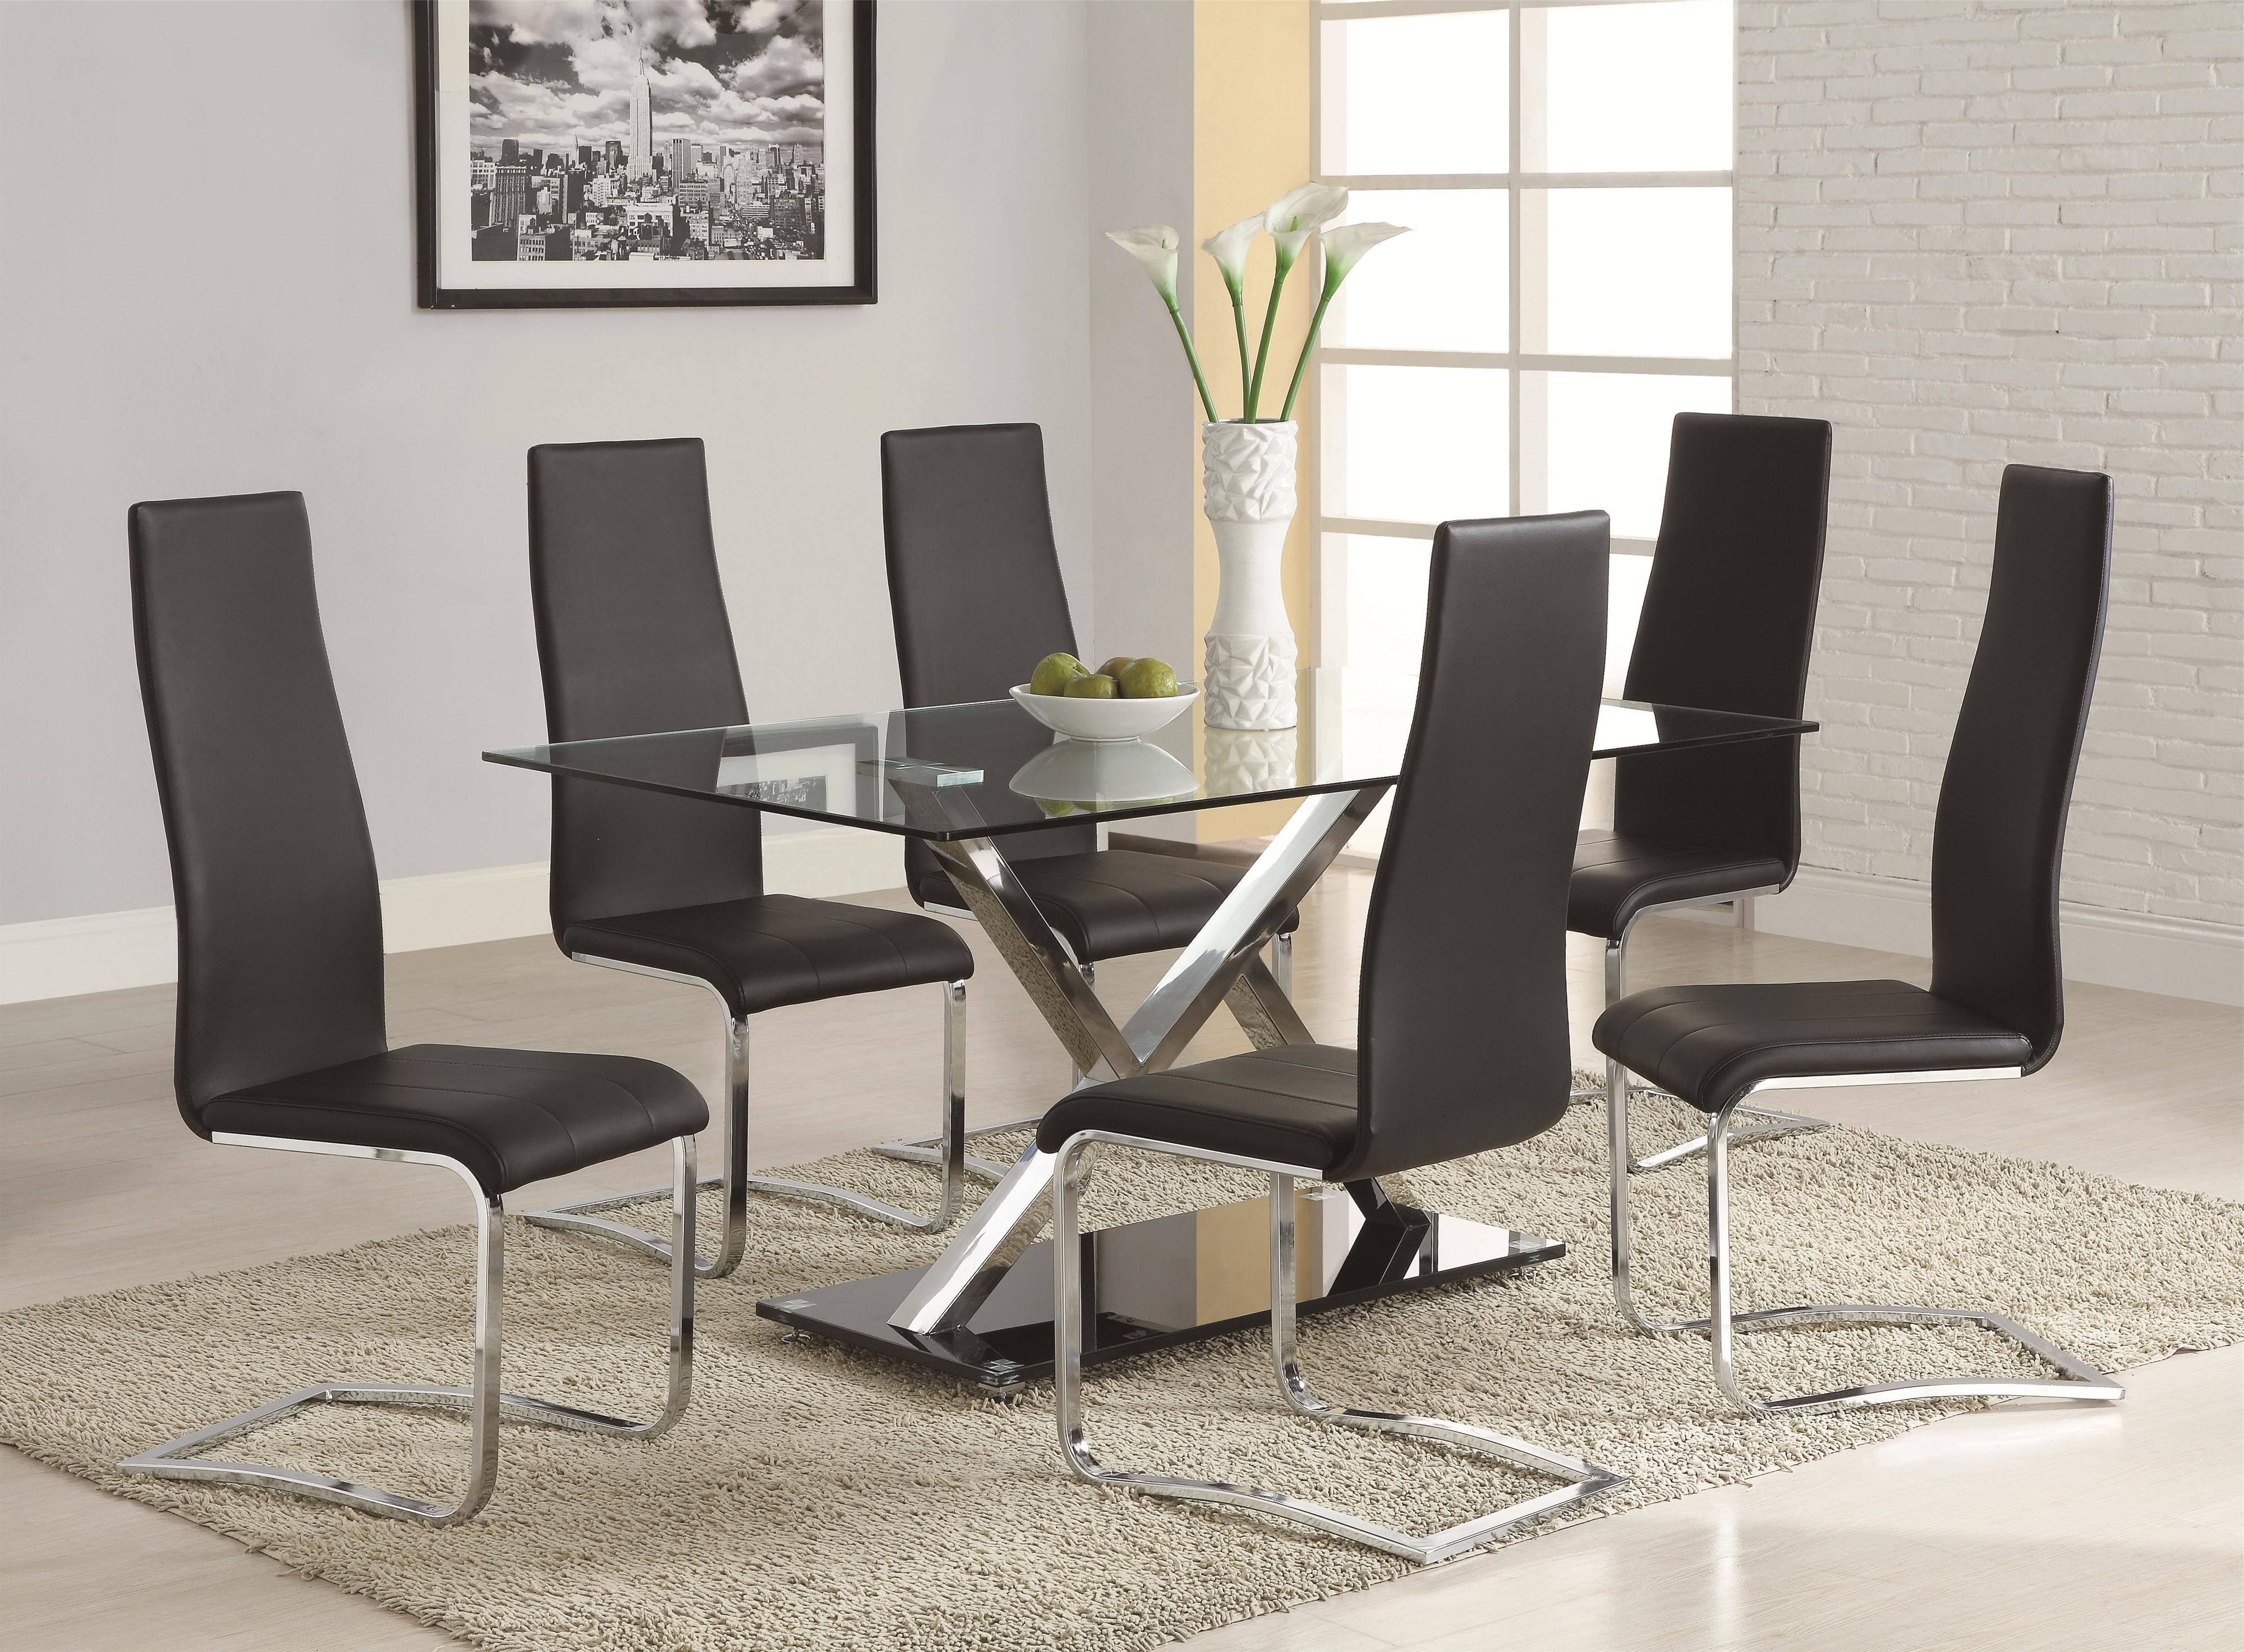 2018 Chrome Dining Room Sets Inside Coaster Modern Dining Black Faux Leather Dining Chair With Chrome (View 1 of 25)